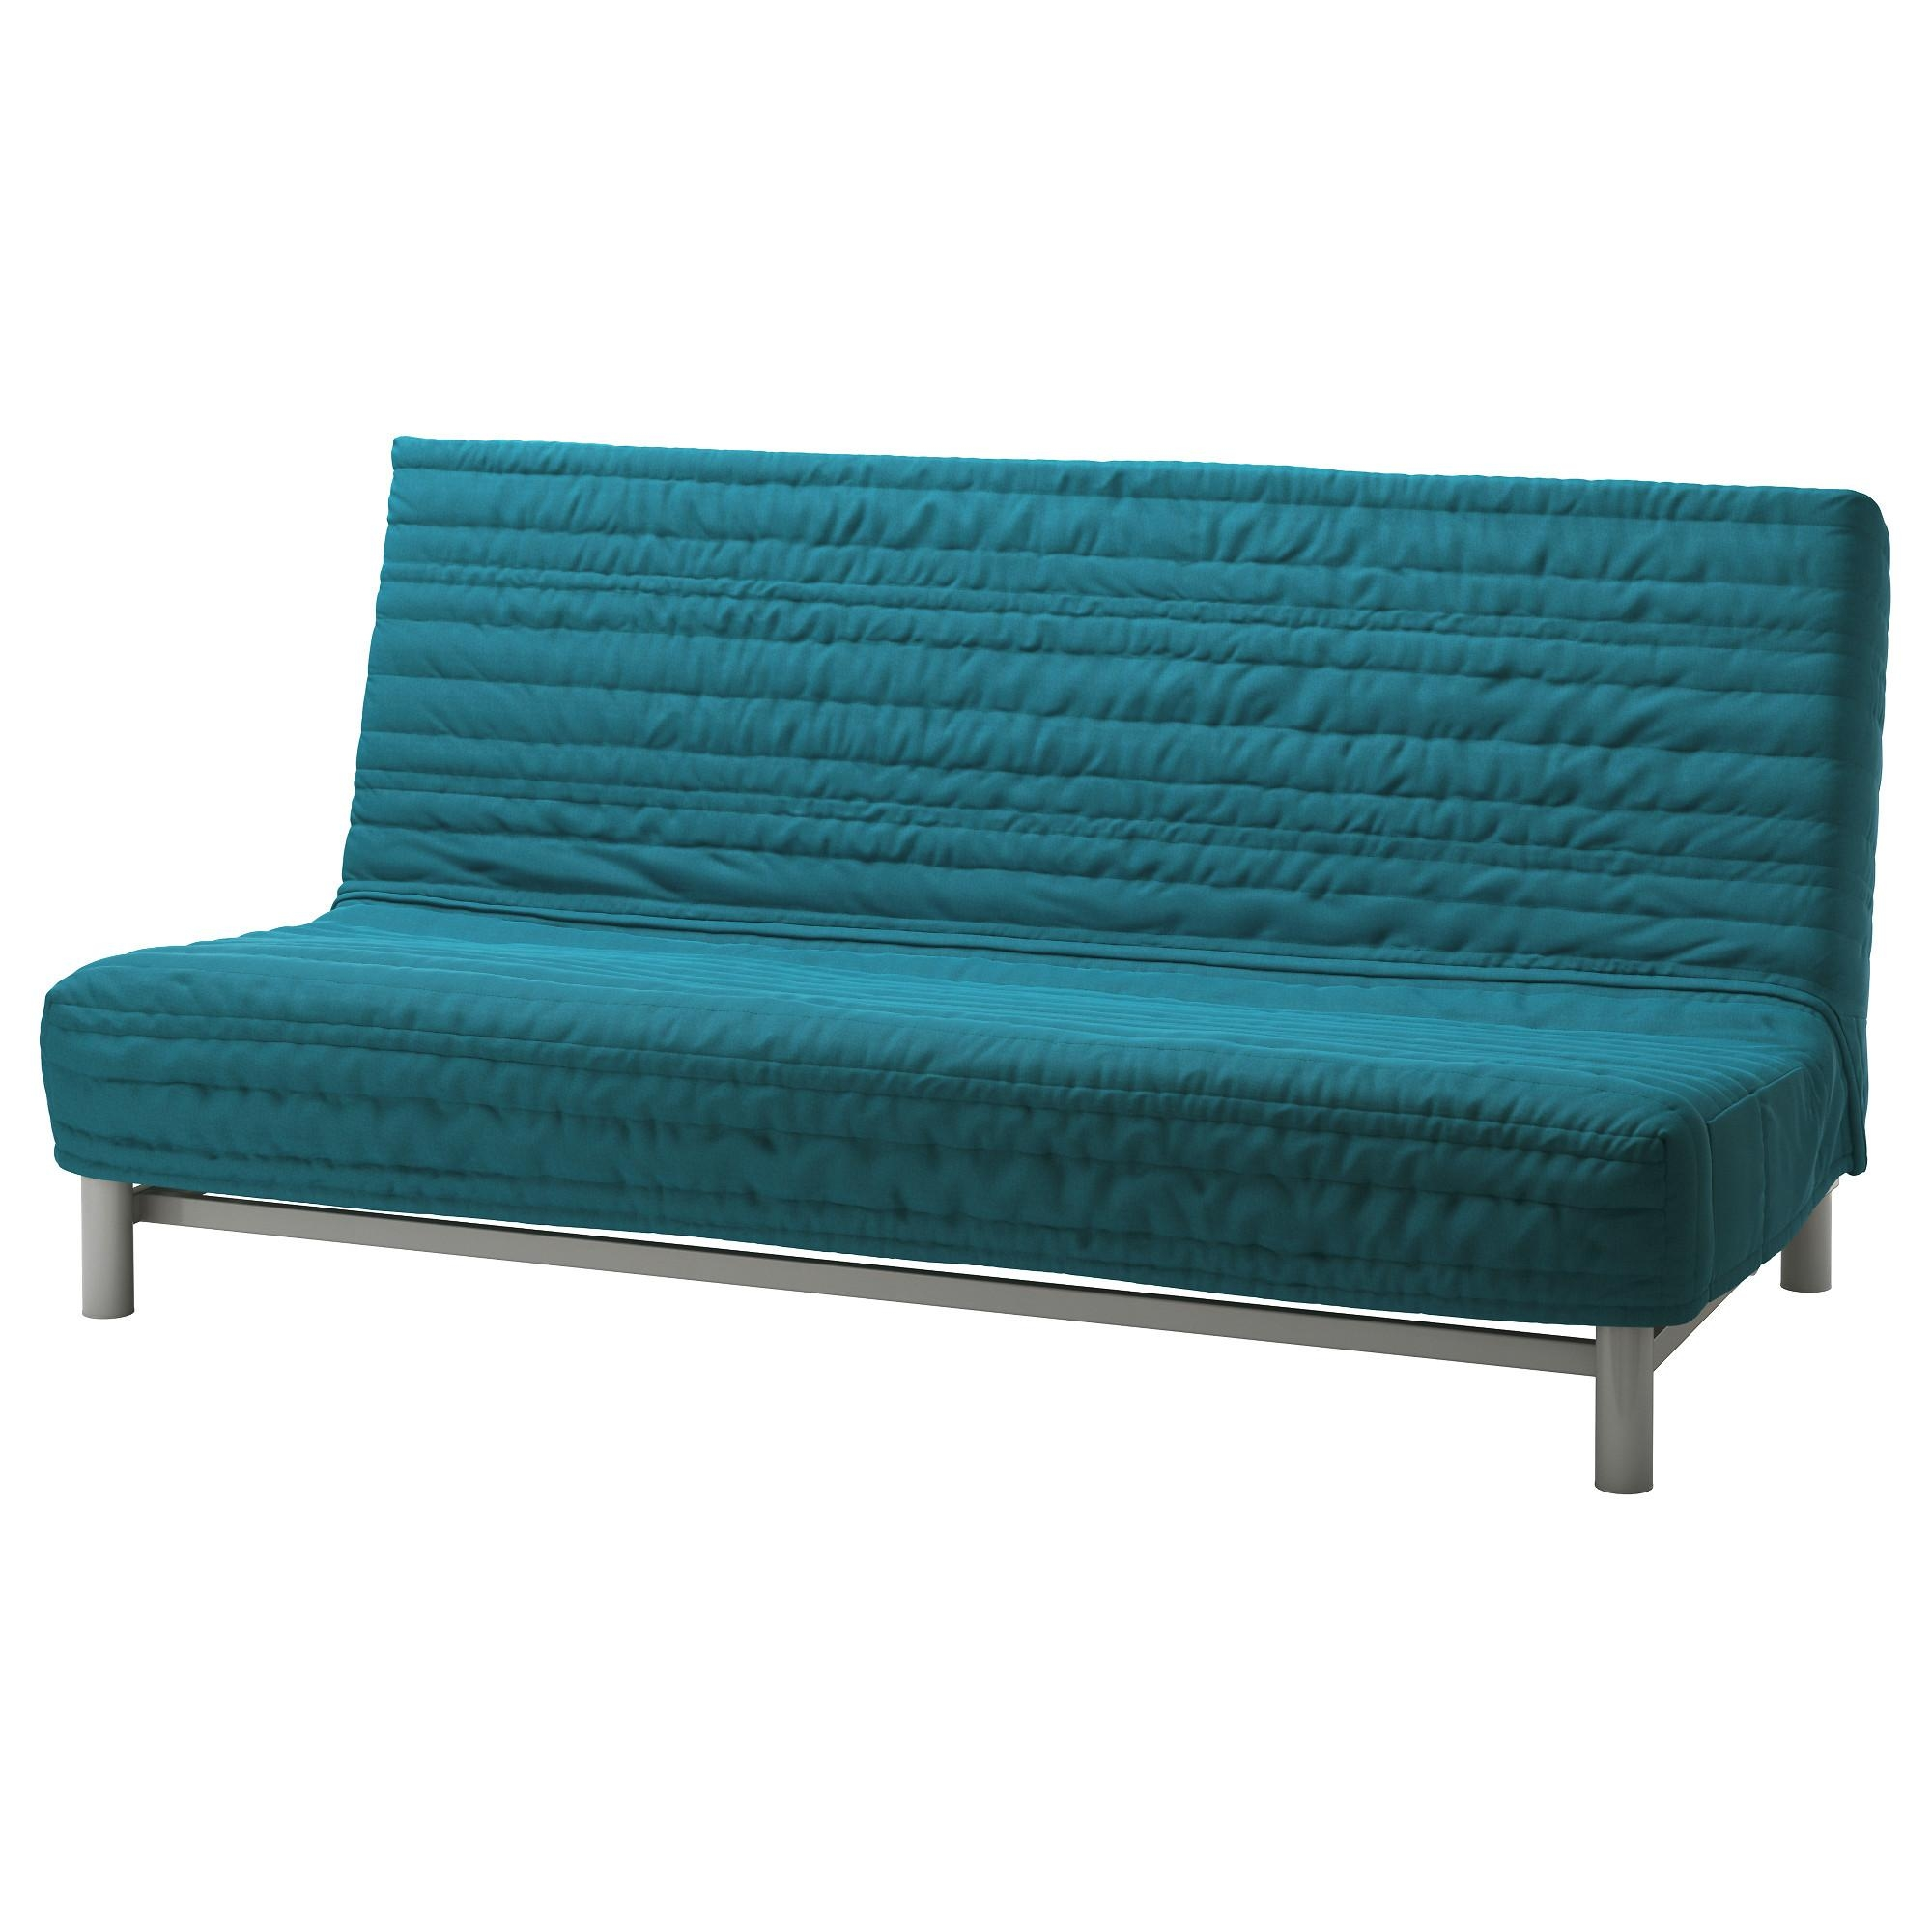 Beddinge Lövås Sleeper Sofa – Knisa Turquoise – Ikea In Single Futon Sofa Beds (Image 6 of 20)